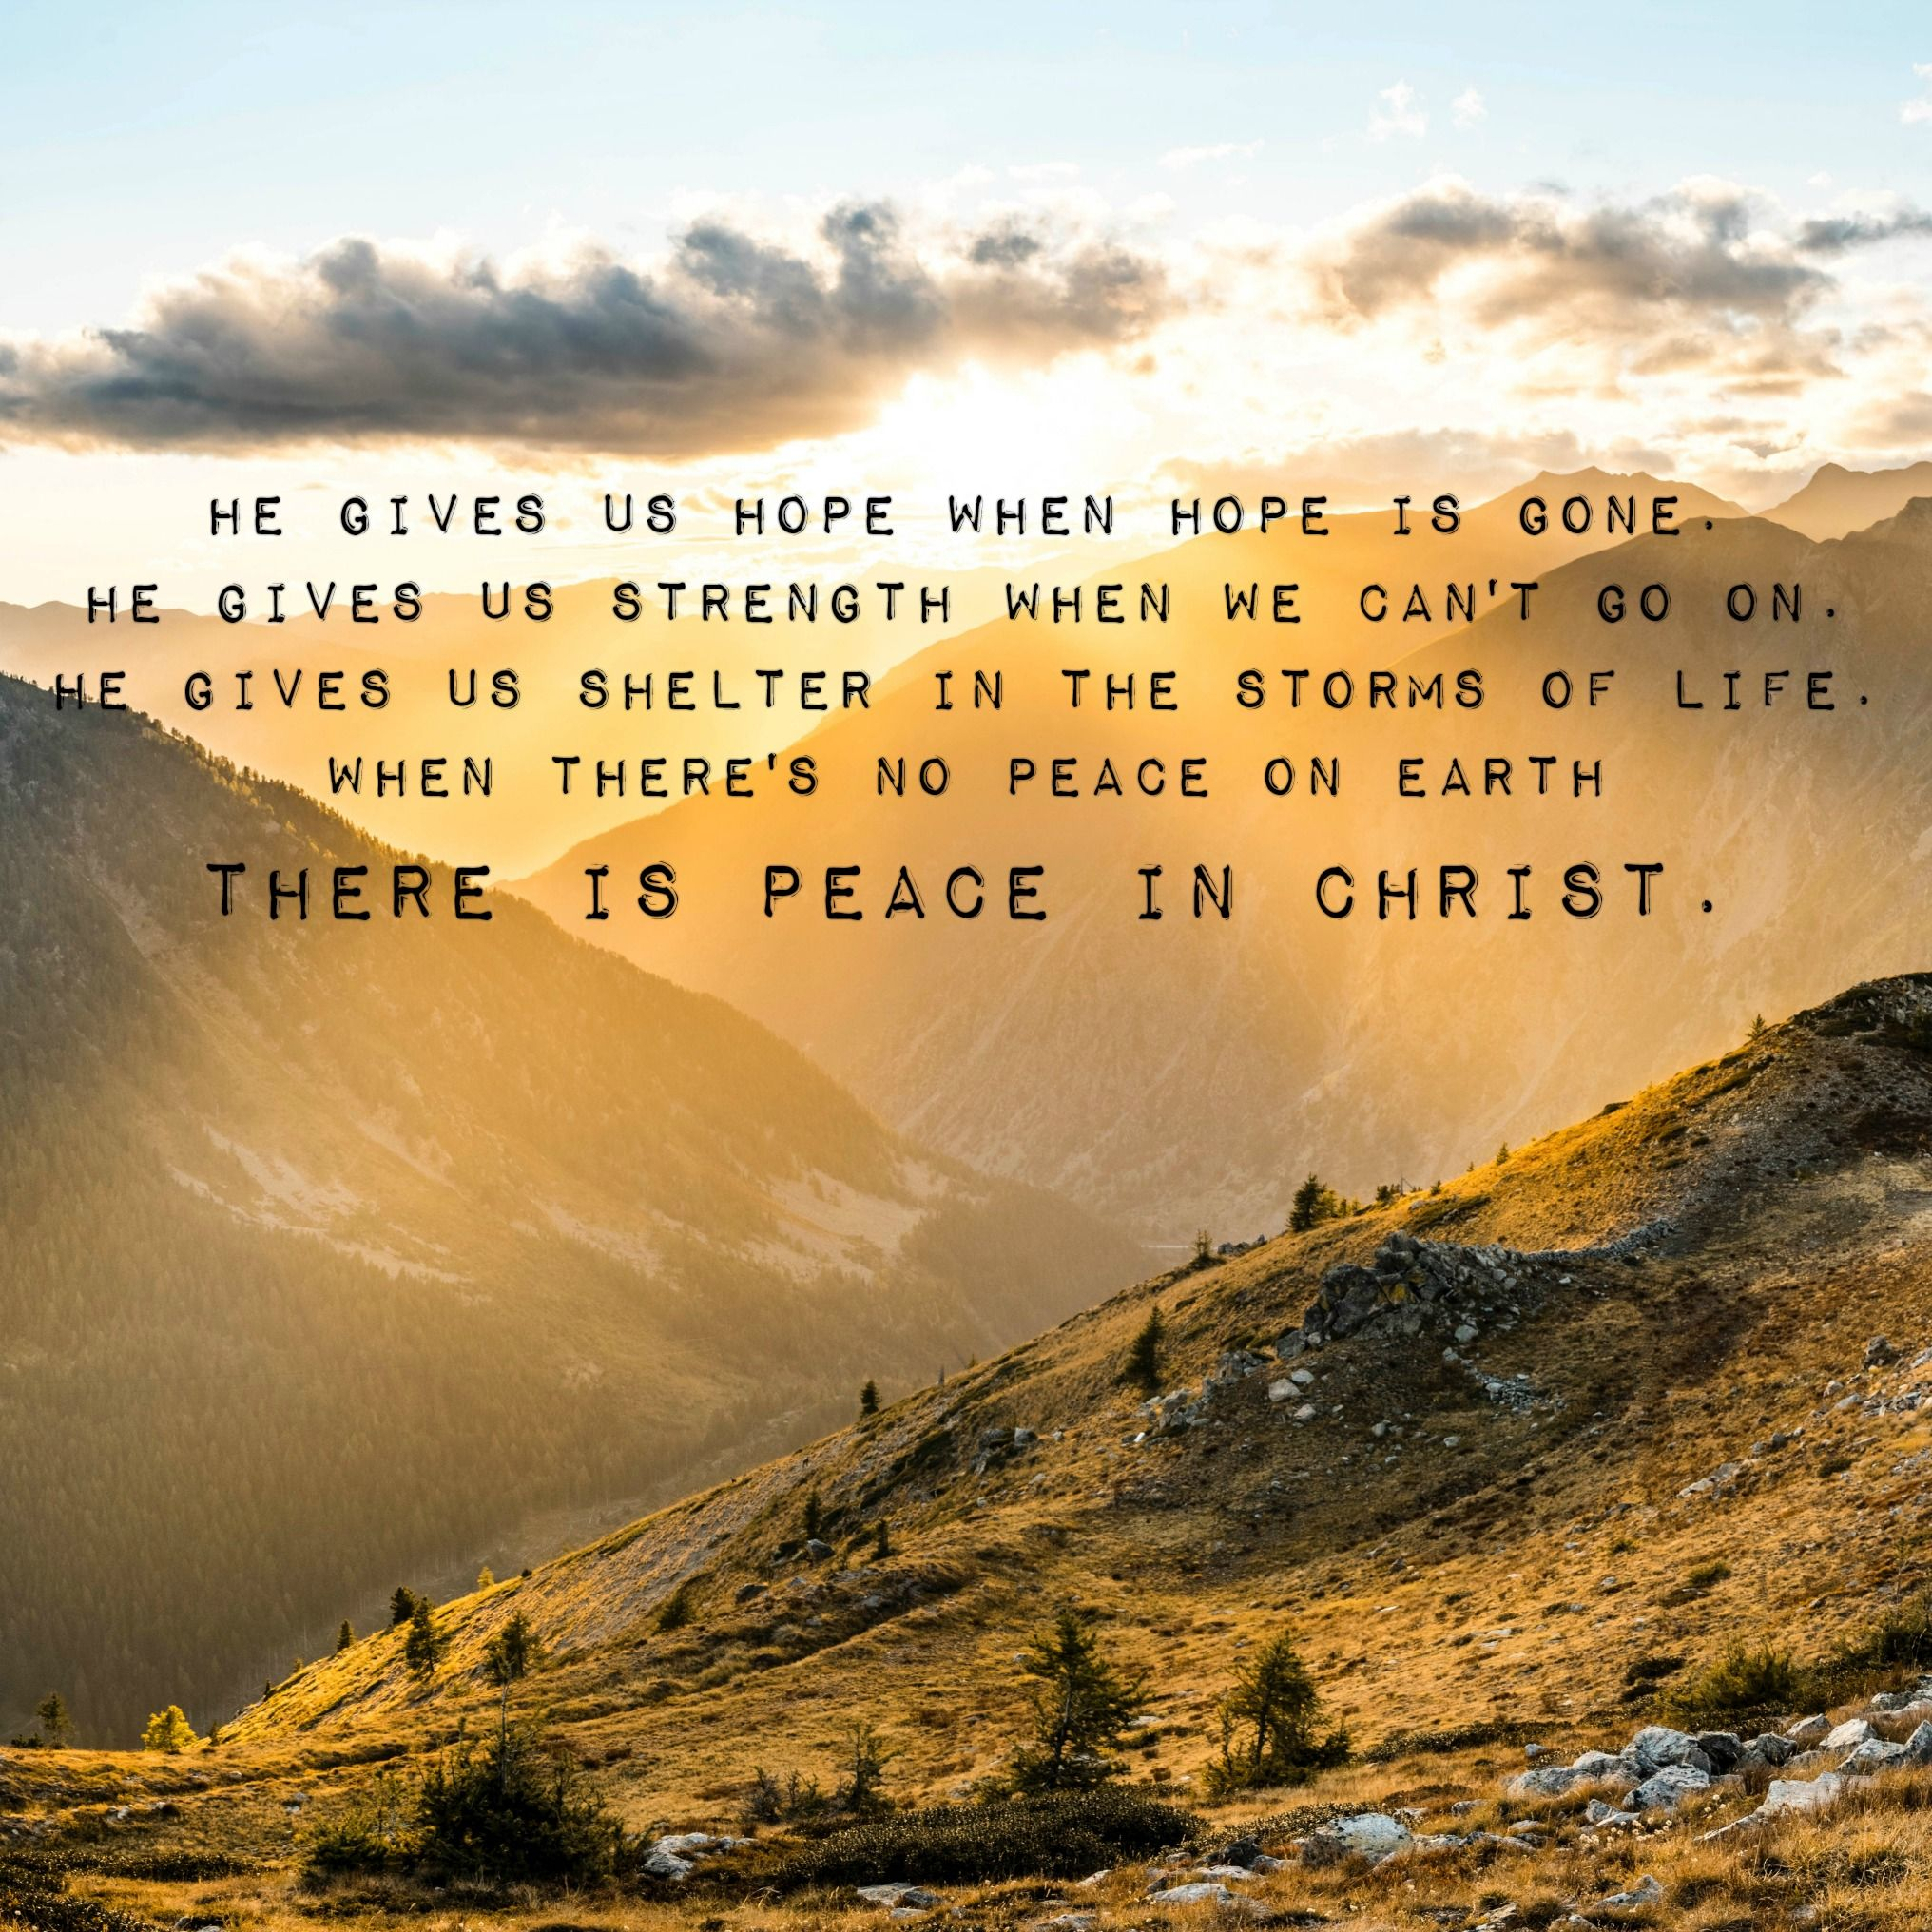 Lds Youth Theme Song Peace In Christ When Theres No Peace On